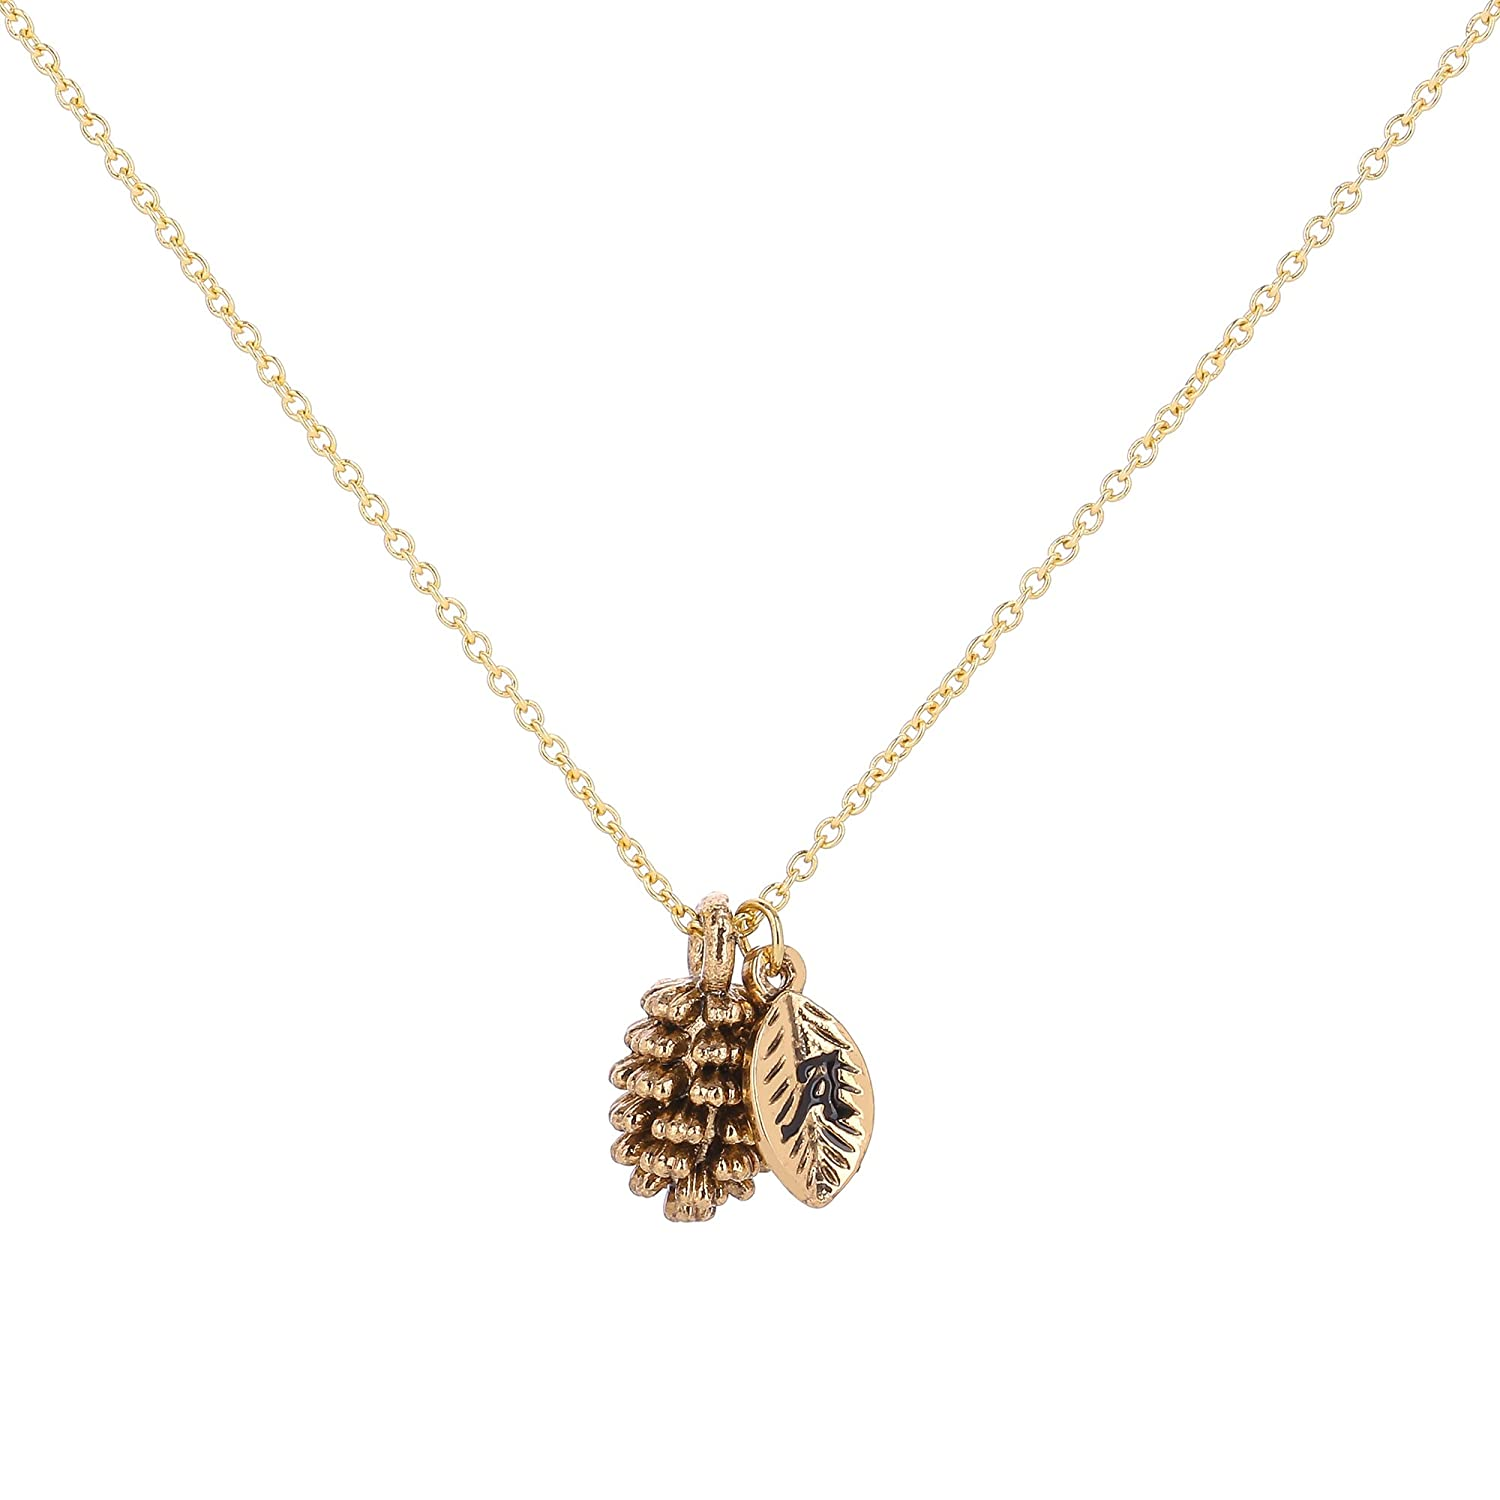 HolyFast Pinecone Necklace Letter Charm Initial Necklace Woman Jewelry Accessories Nuts Charm Leaf Charm